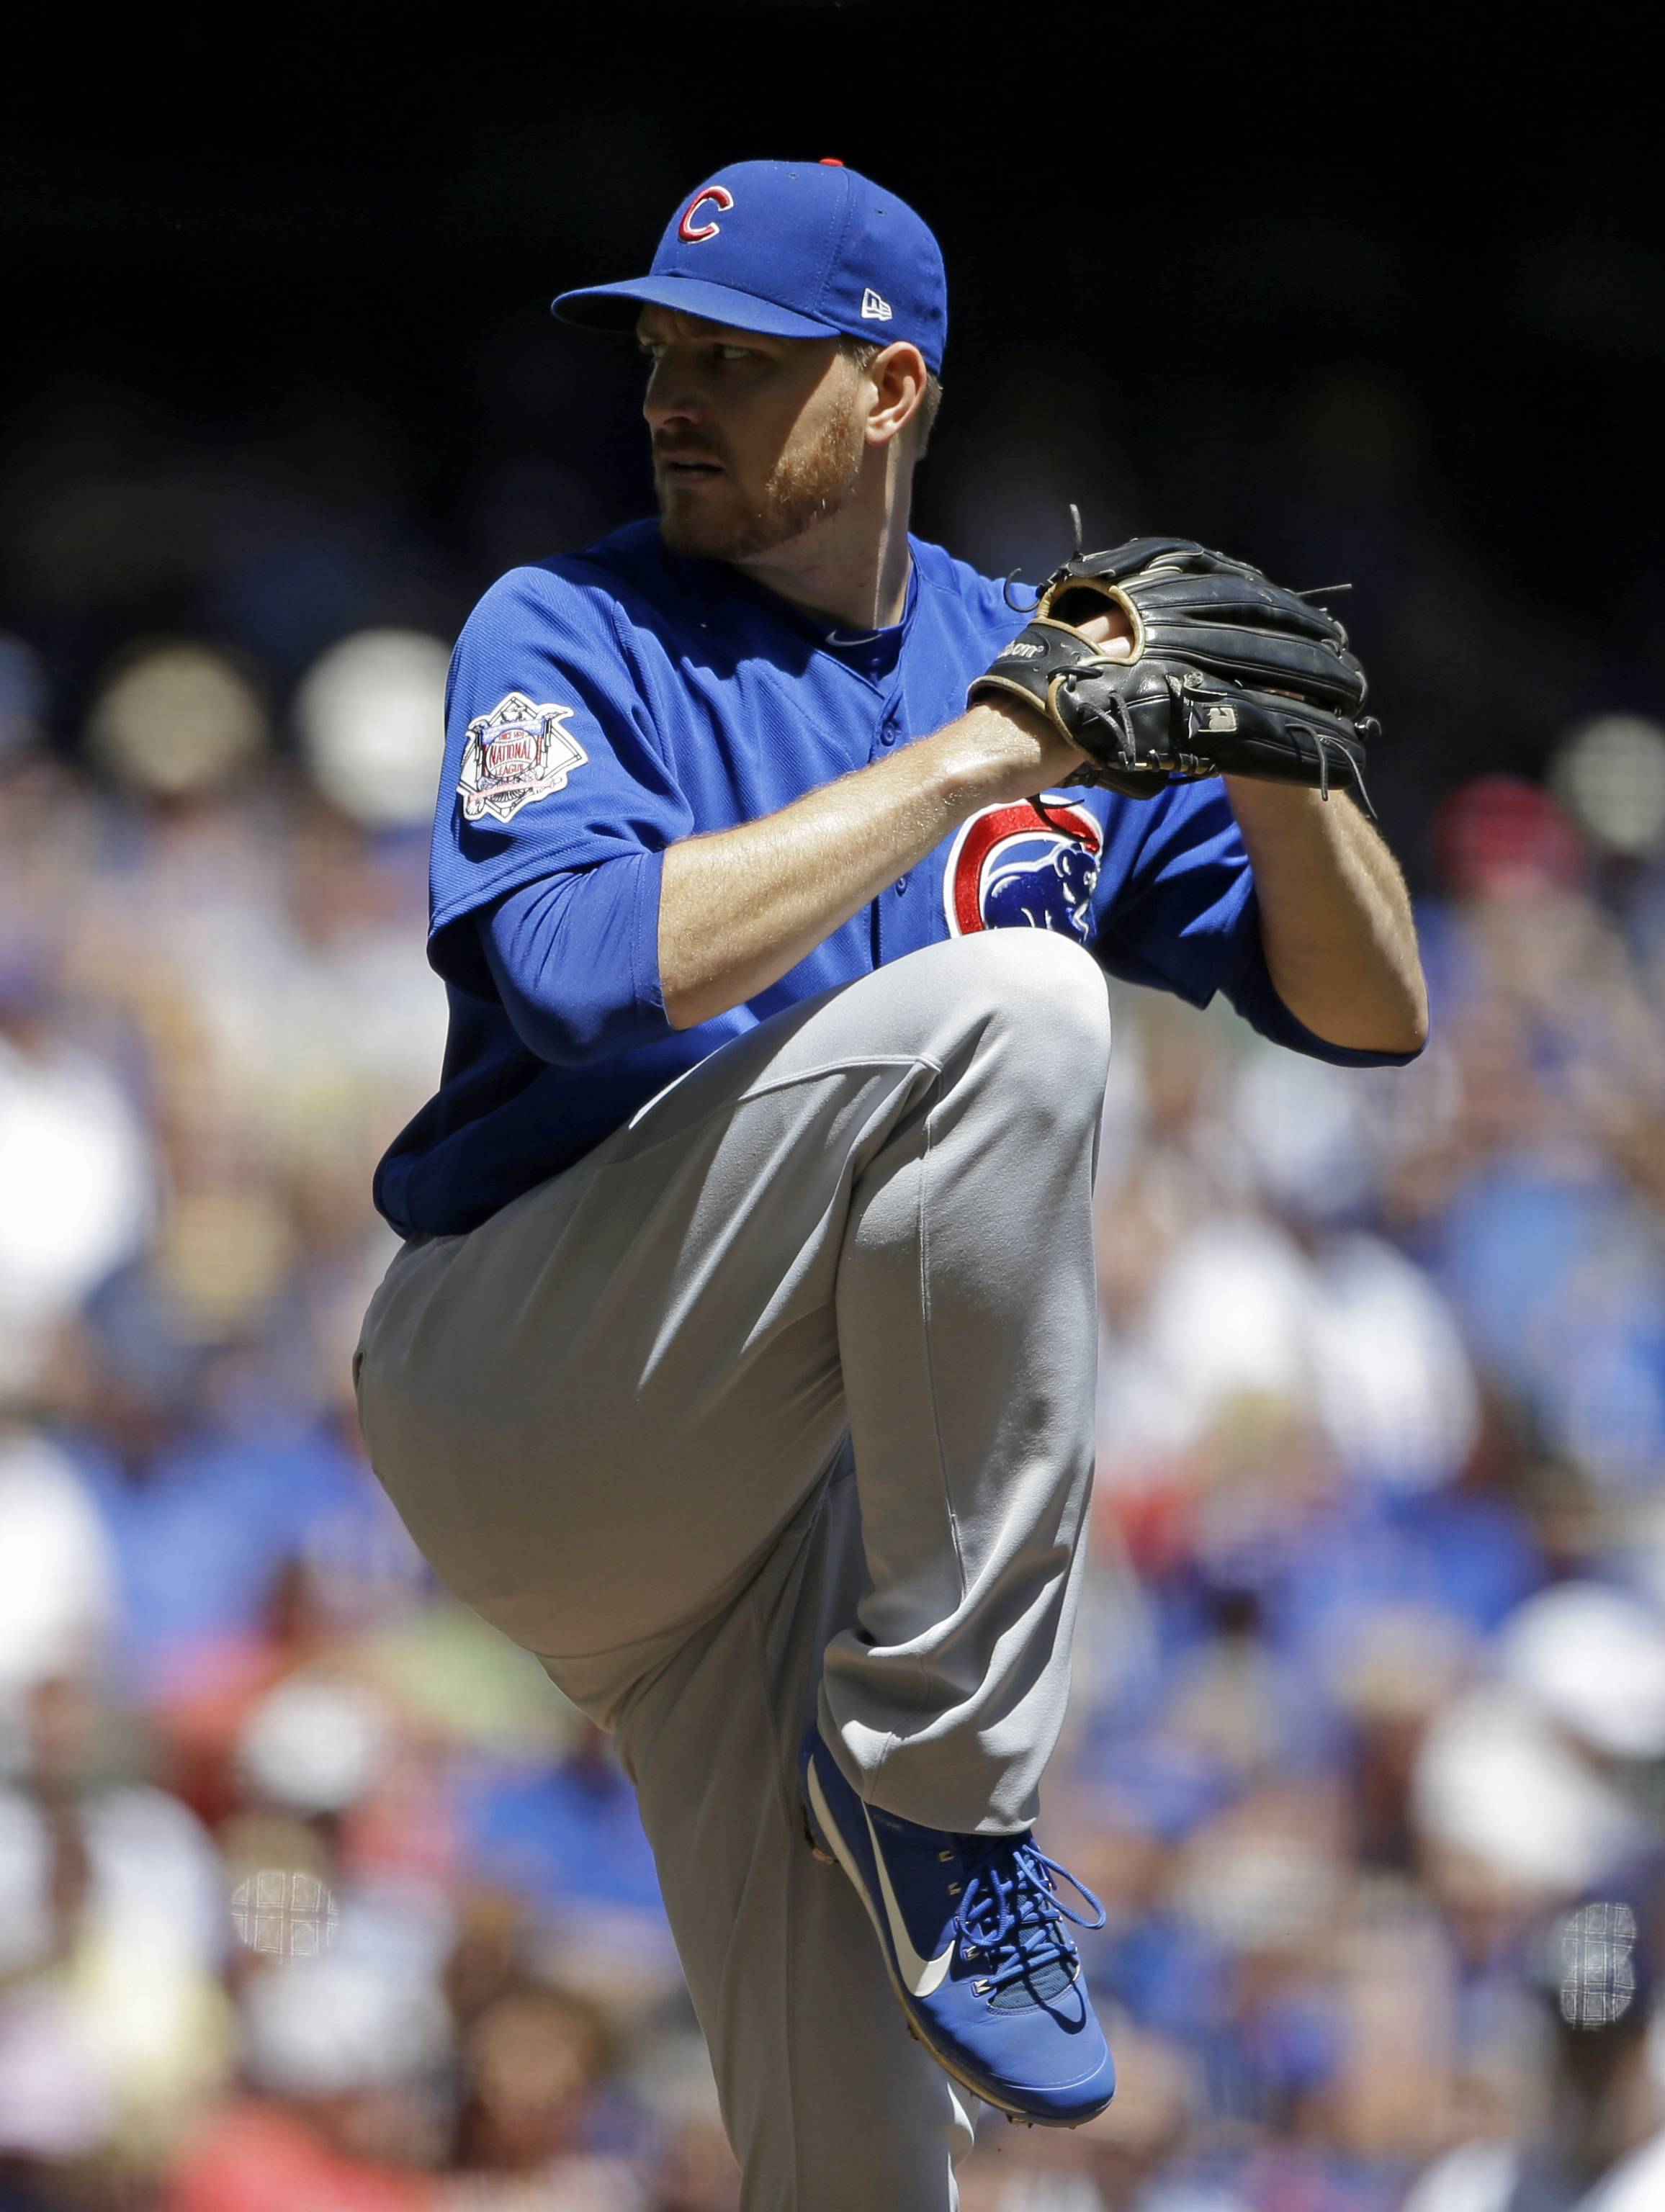 In 4 starts for the Chicago Cubs, Mike Montgomery has recorded an ERA of 1.14. He had another strong outing on Wednesday in a 1-0 loss to the Milwaukee Brewers.